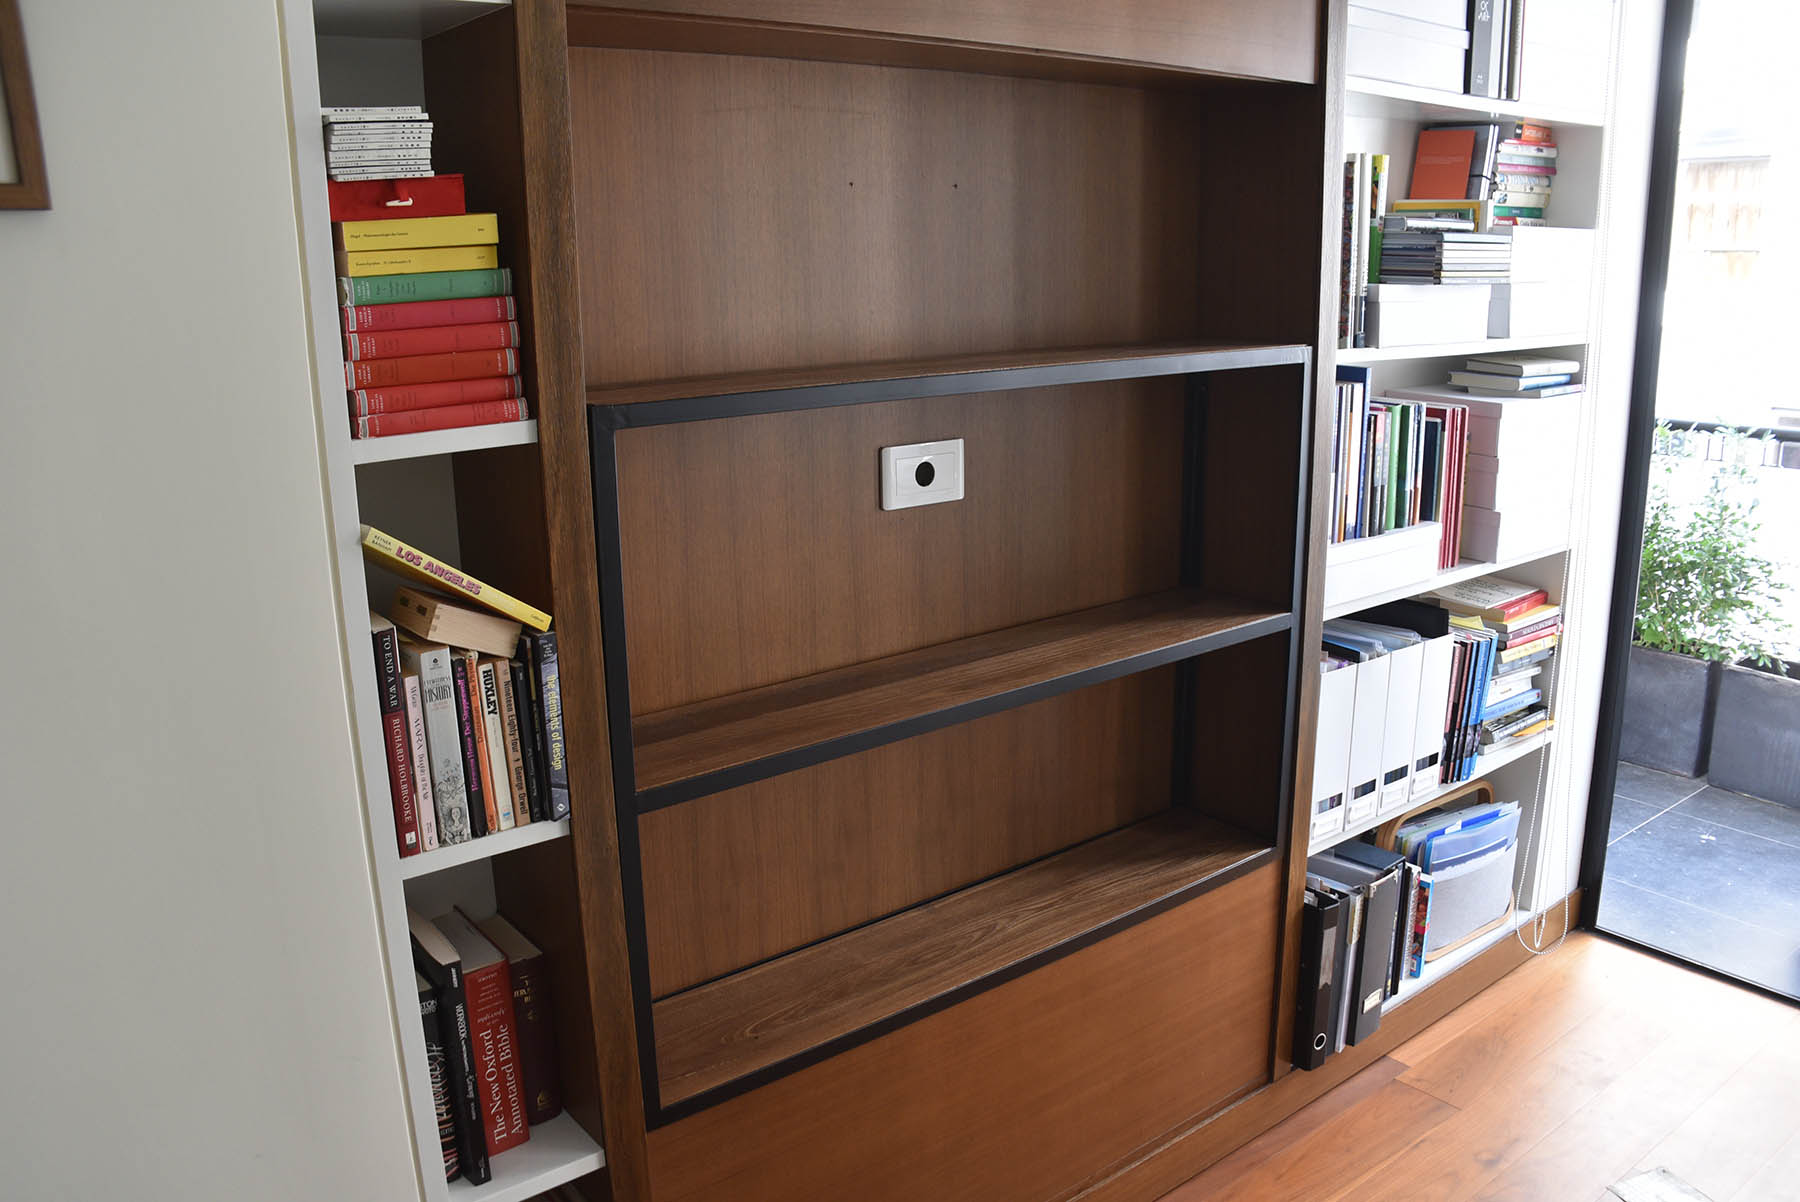 Stylish custom made furniture built in Hong Kong by craftspeople in Elm wood and black steel